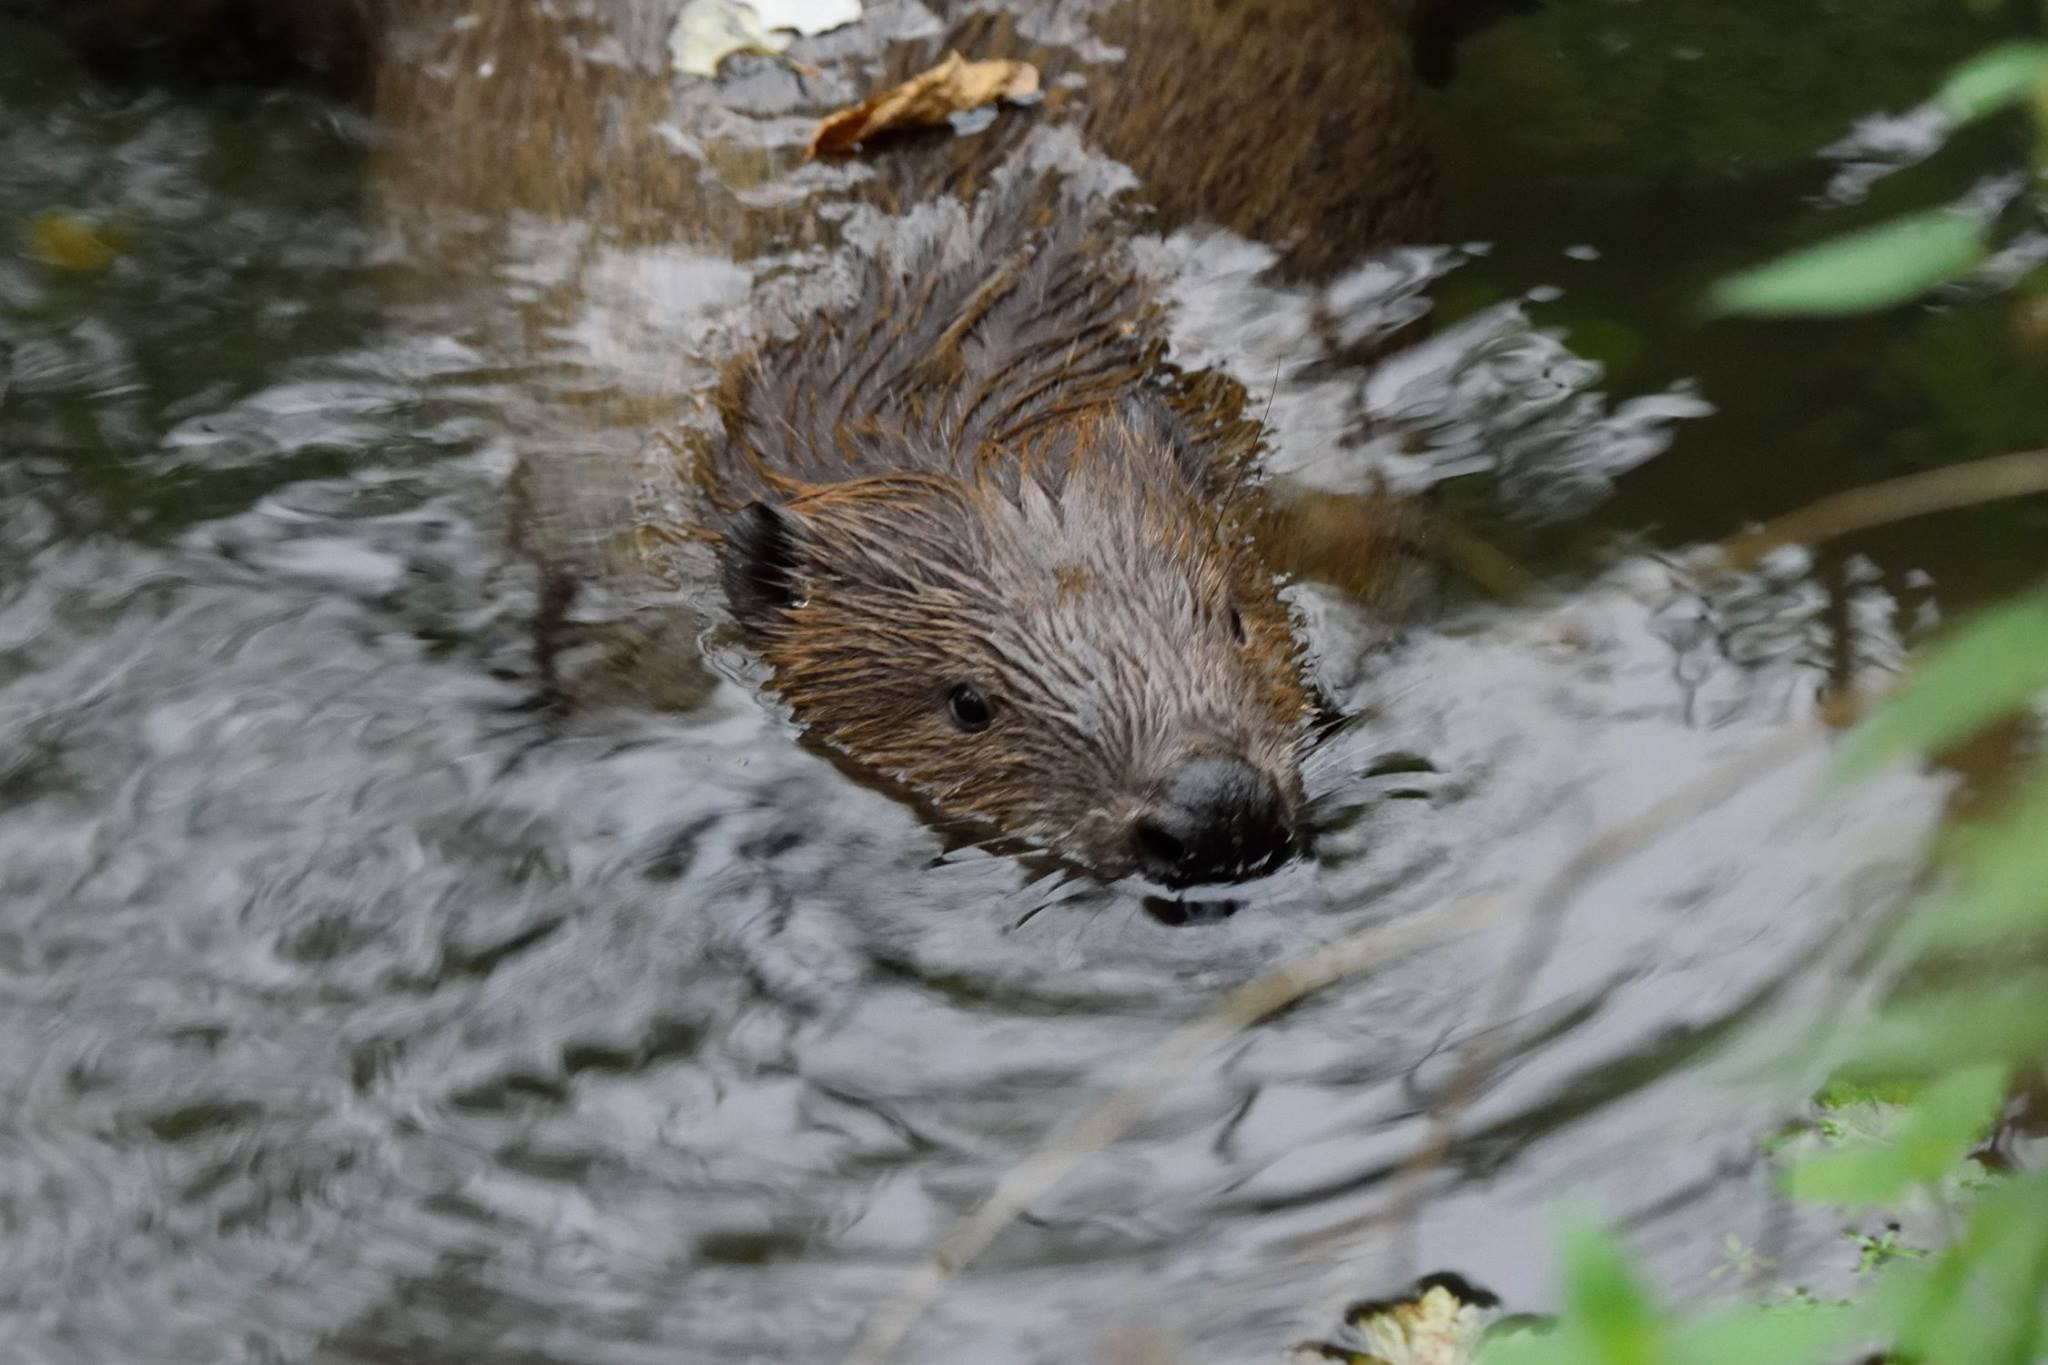 A fifth of Scotland's beavers lethally controlled in 2019